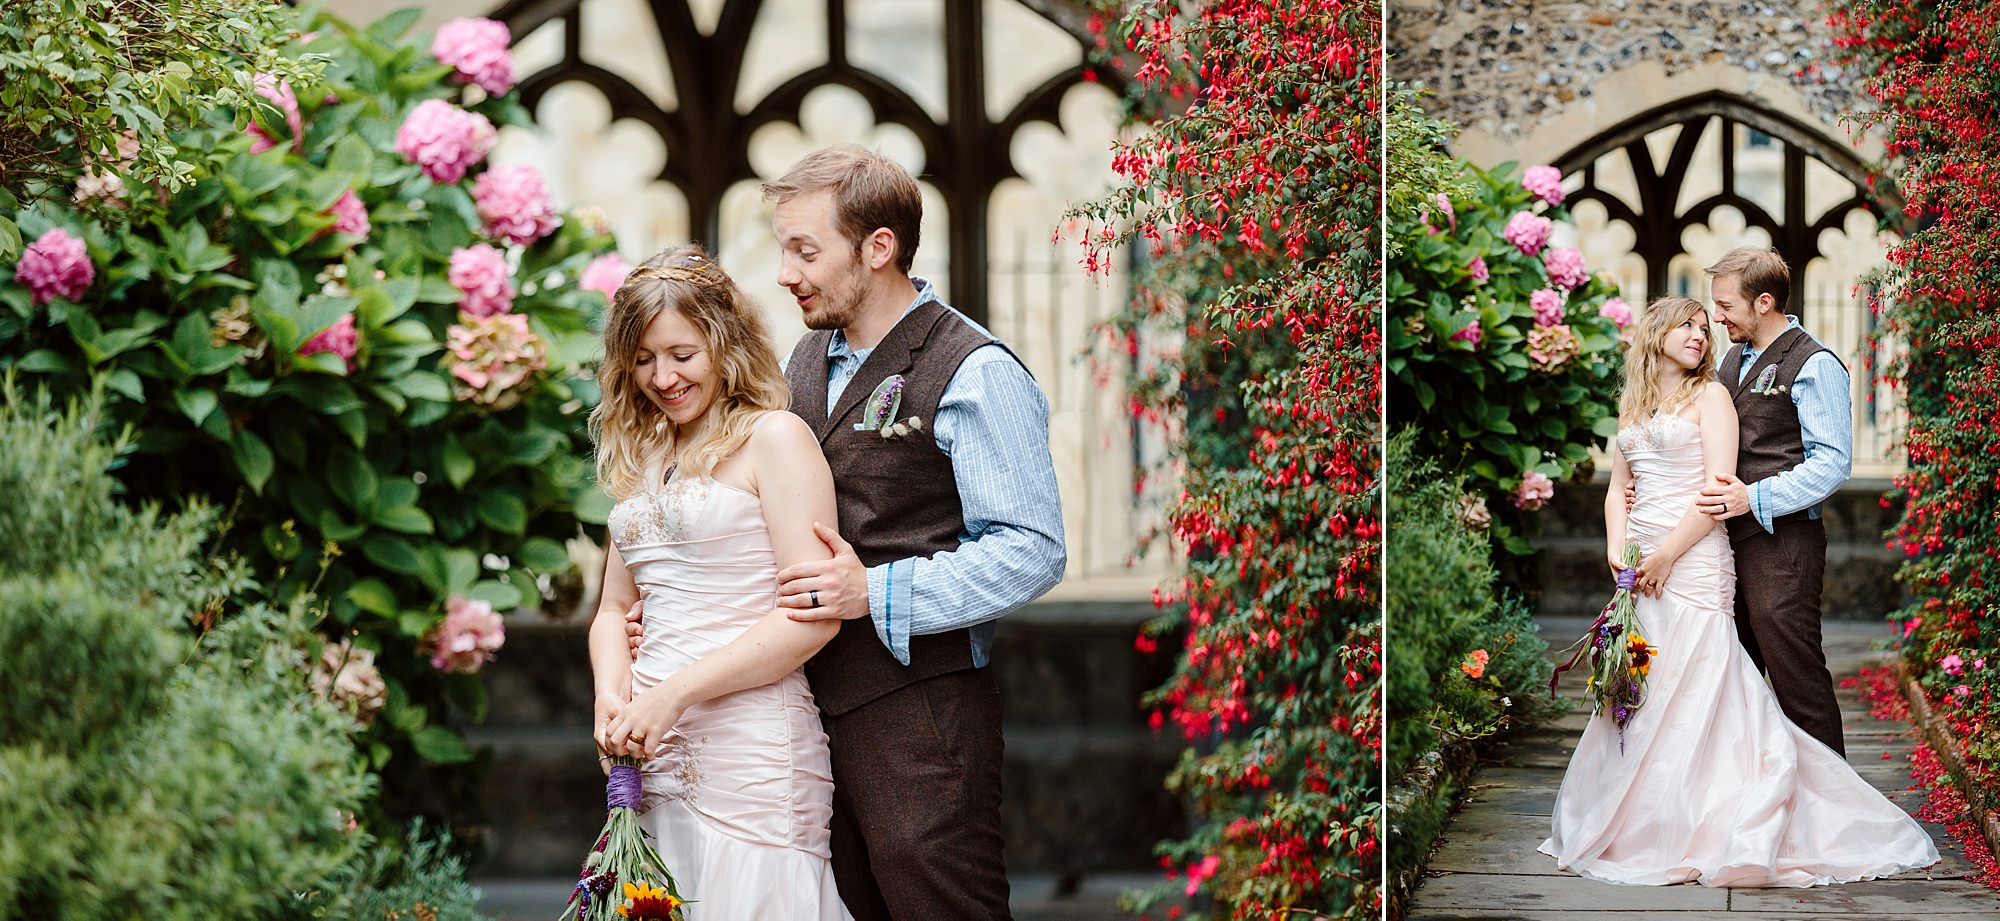 Fun village hall wedding bride and groom ;laughing together at chichester cathedral